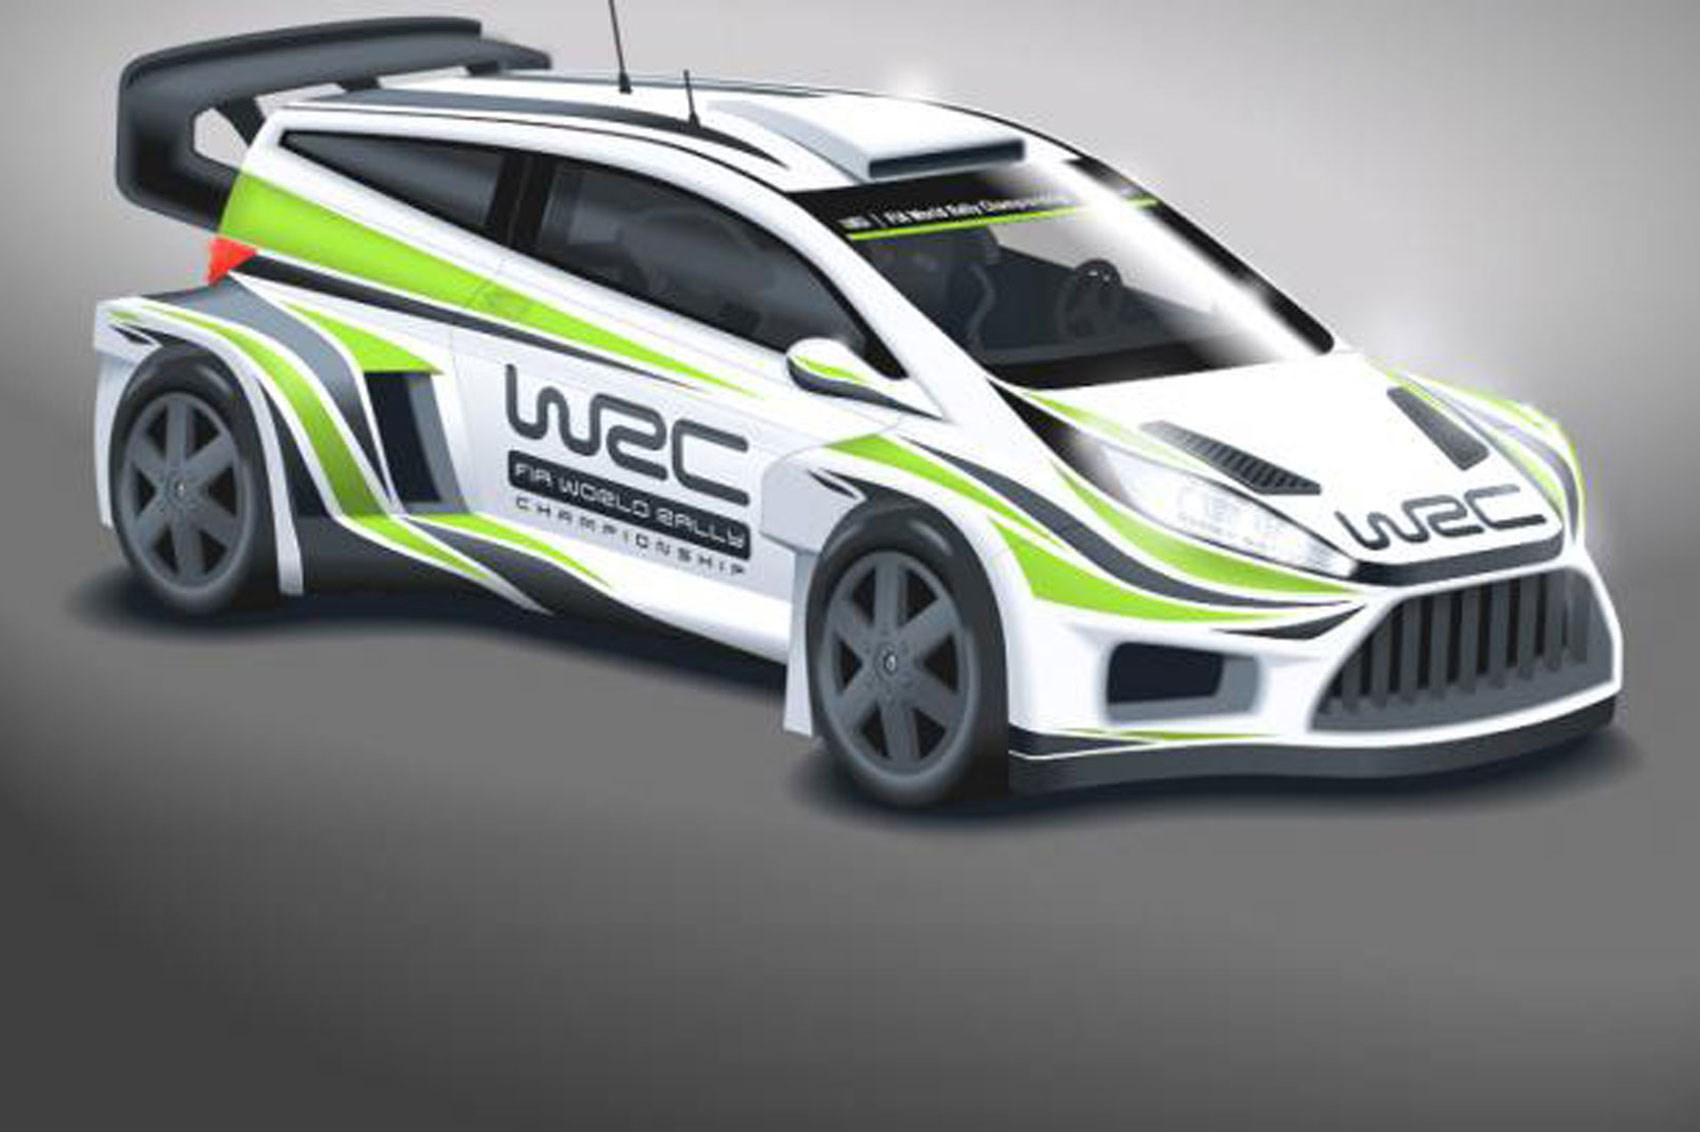 Ultrablogus  Remarkable Wild New Look For Wrc Cars In  By Car Magazine With Licious Wrc Cars Will Get Wider Bodies Bigger Wings And More Power For  With Amusing Tumbler Interior Also Interior Of Tata Safari Storme In Addition New Honda City Diesel Interior And Dc Type R Interior As Well As Nsx R Interior Additionally Interior Of I Grand From Carmagazinecouk With Ultrablogus  Licious Wild New Look For Wrc Cars In  By Car Magazine With Amusing Wrc Cars Will Get Wider Bodies Bigger Wings And More Power For  And Remarkable Tumbler Interior Also Interior Of Tata Safari Storme In Addition New Honda City Diesel Interior From Carmagazinecouk